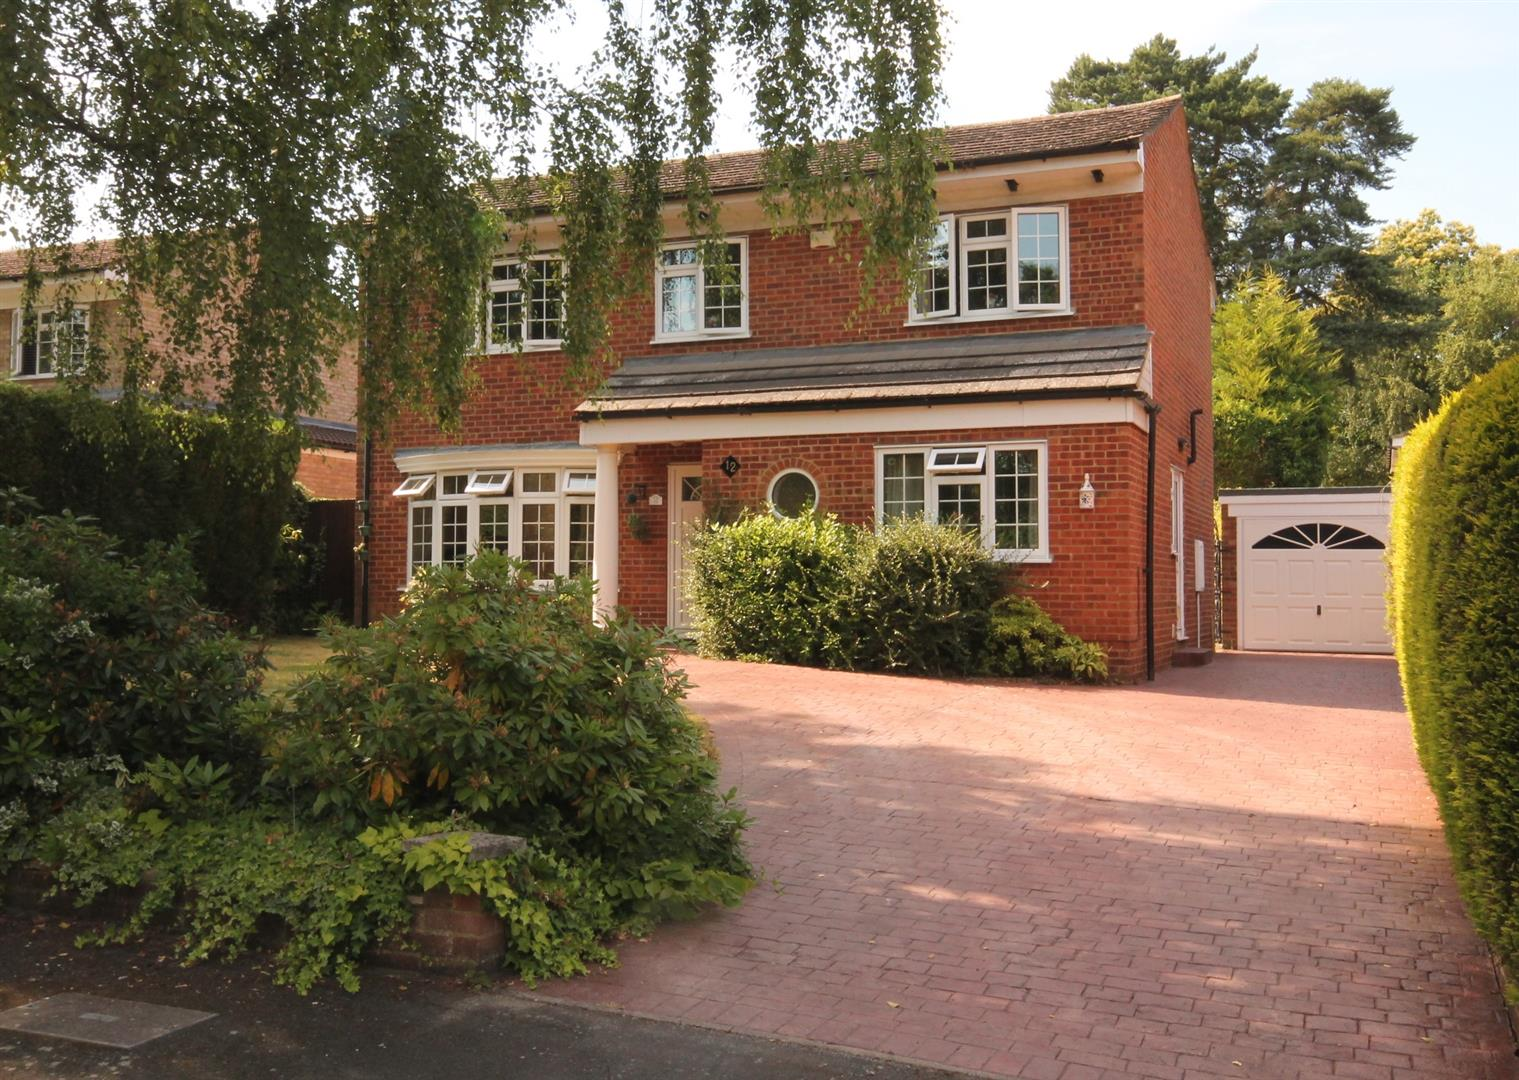 Properties Estate Agents Farnborough Hampshire Mitchell Partners Detached Full Brick Brand New Home On Wiring House To Garage